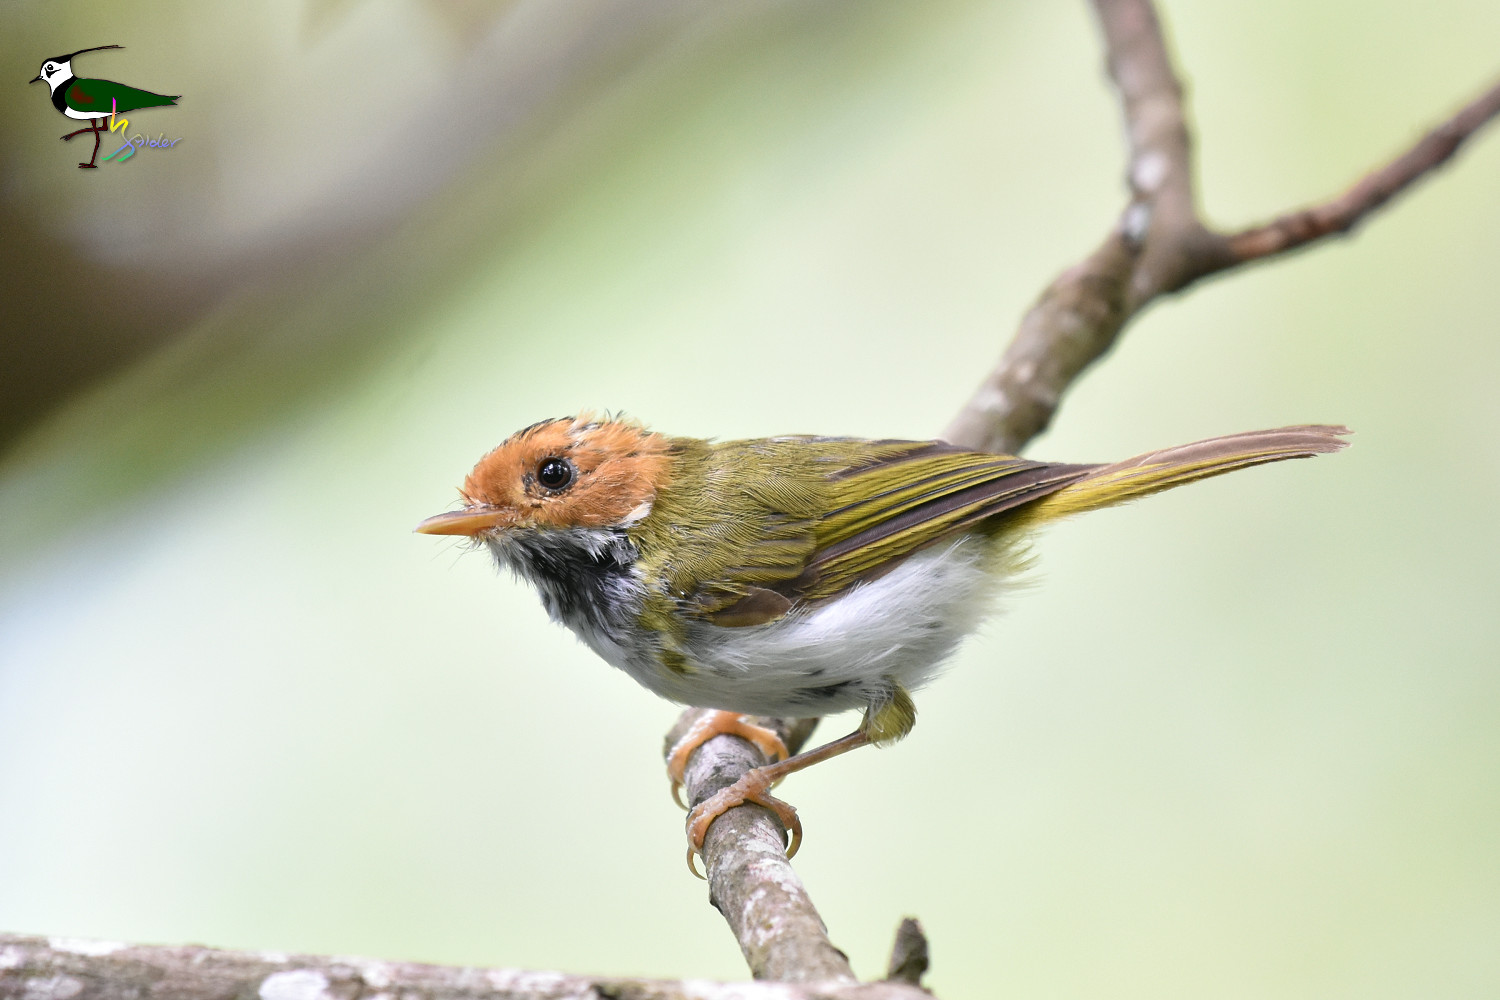 White-throated_Flycatcher_Warbler_2273